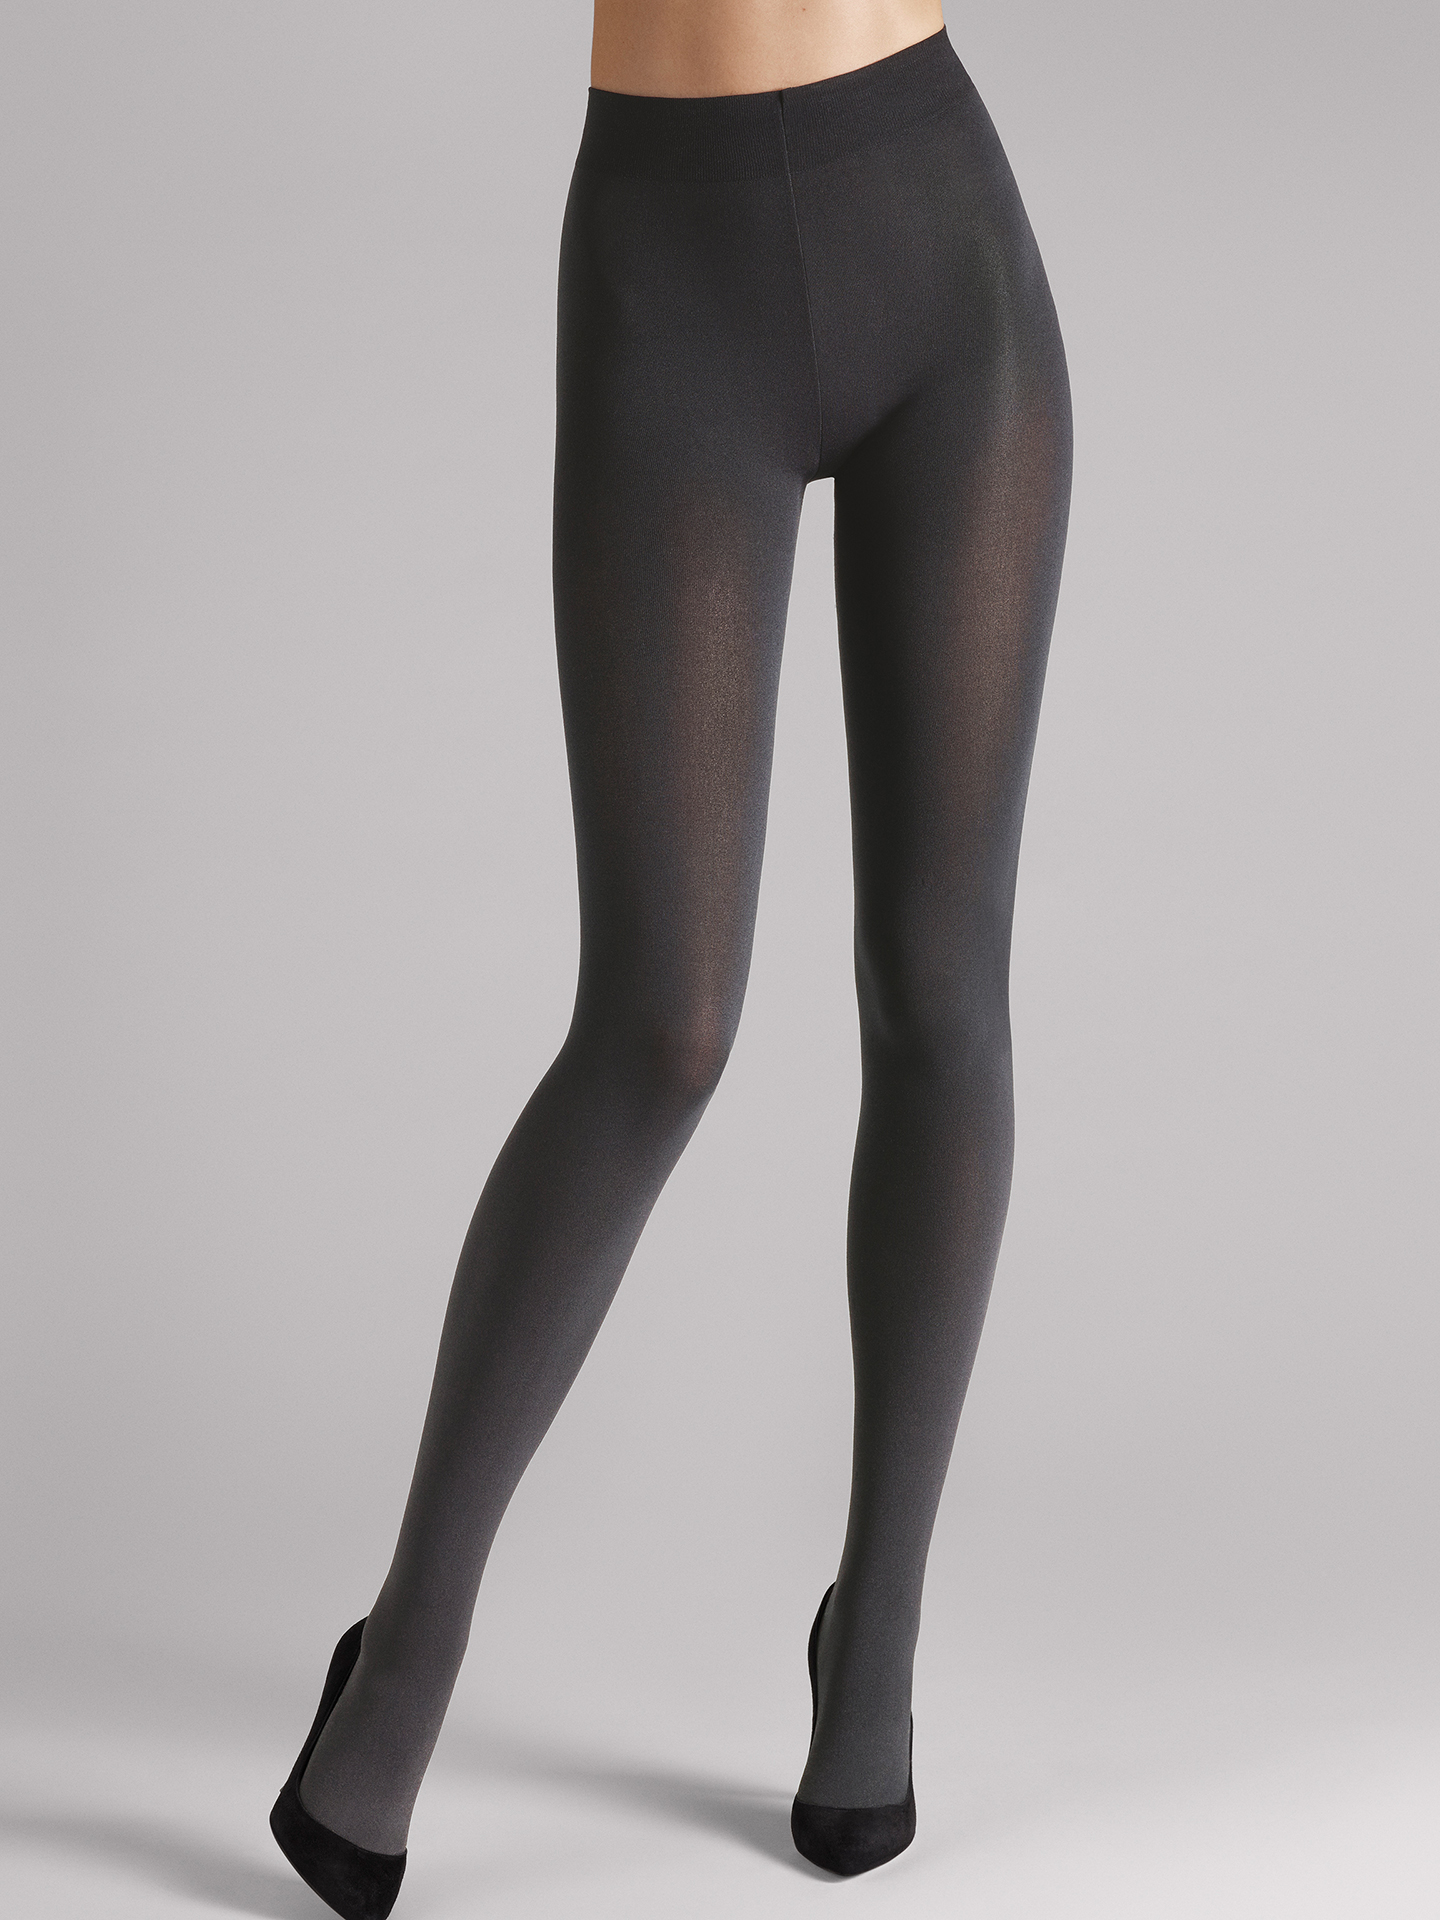 Wolford Apparel & Accessories > Clothing > Collant Velvet Sensation Tights - 7221 - S